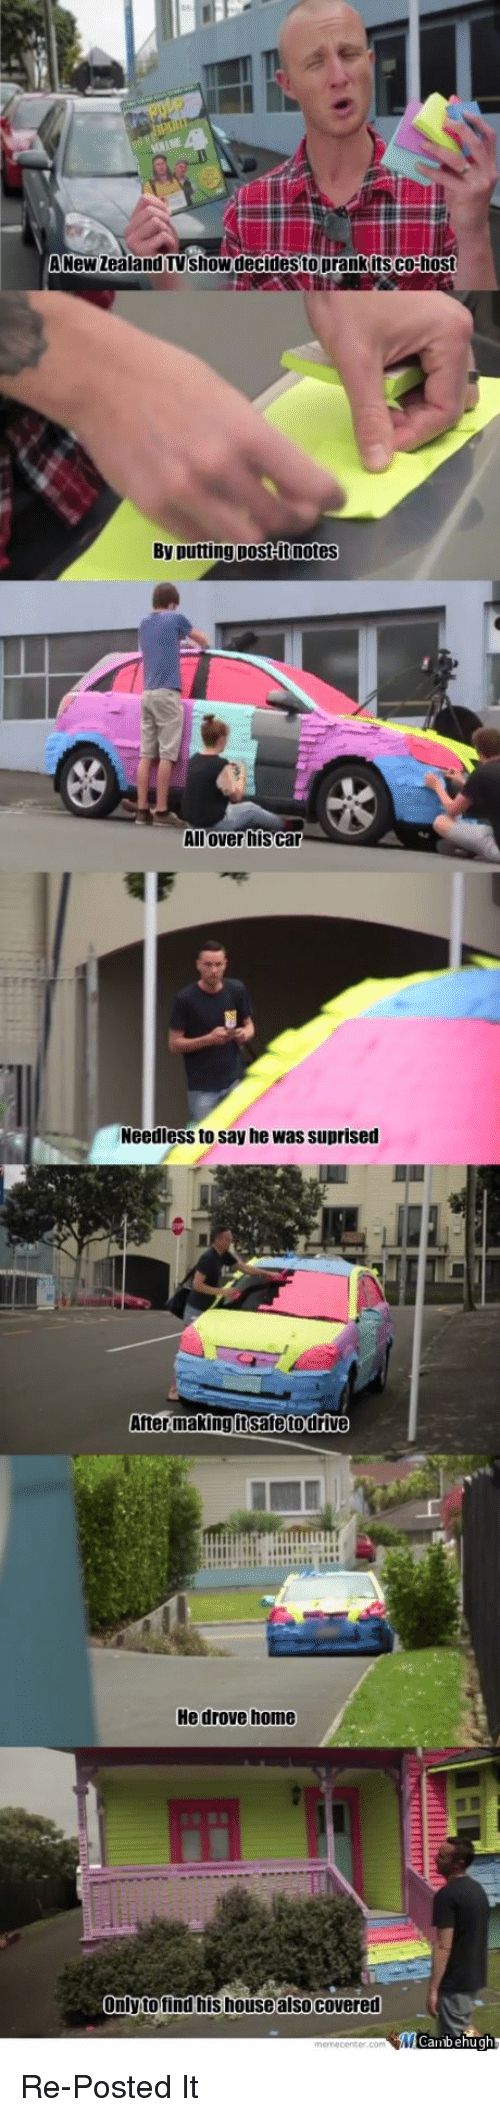 Funny, Prank, and Drive: A New Zealand TVshowdecides to prank its co:host  By putting post-it notes  Allover hisca  Needless to say he was suprised  เป็1  fter making itsafe to drive  He drove home  Onlyto find his housealsocovered Re-Posted It